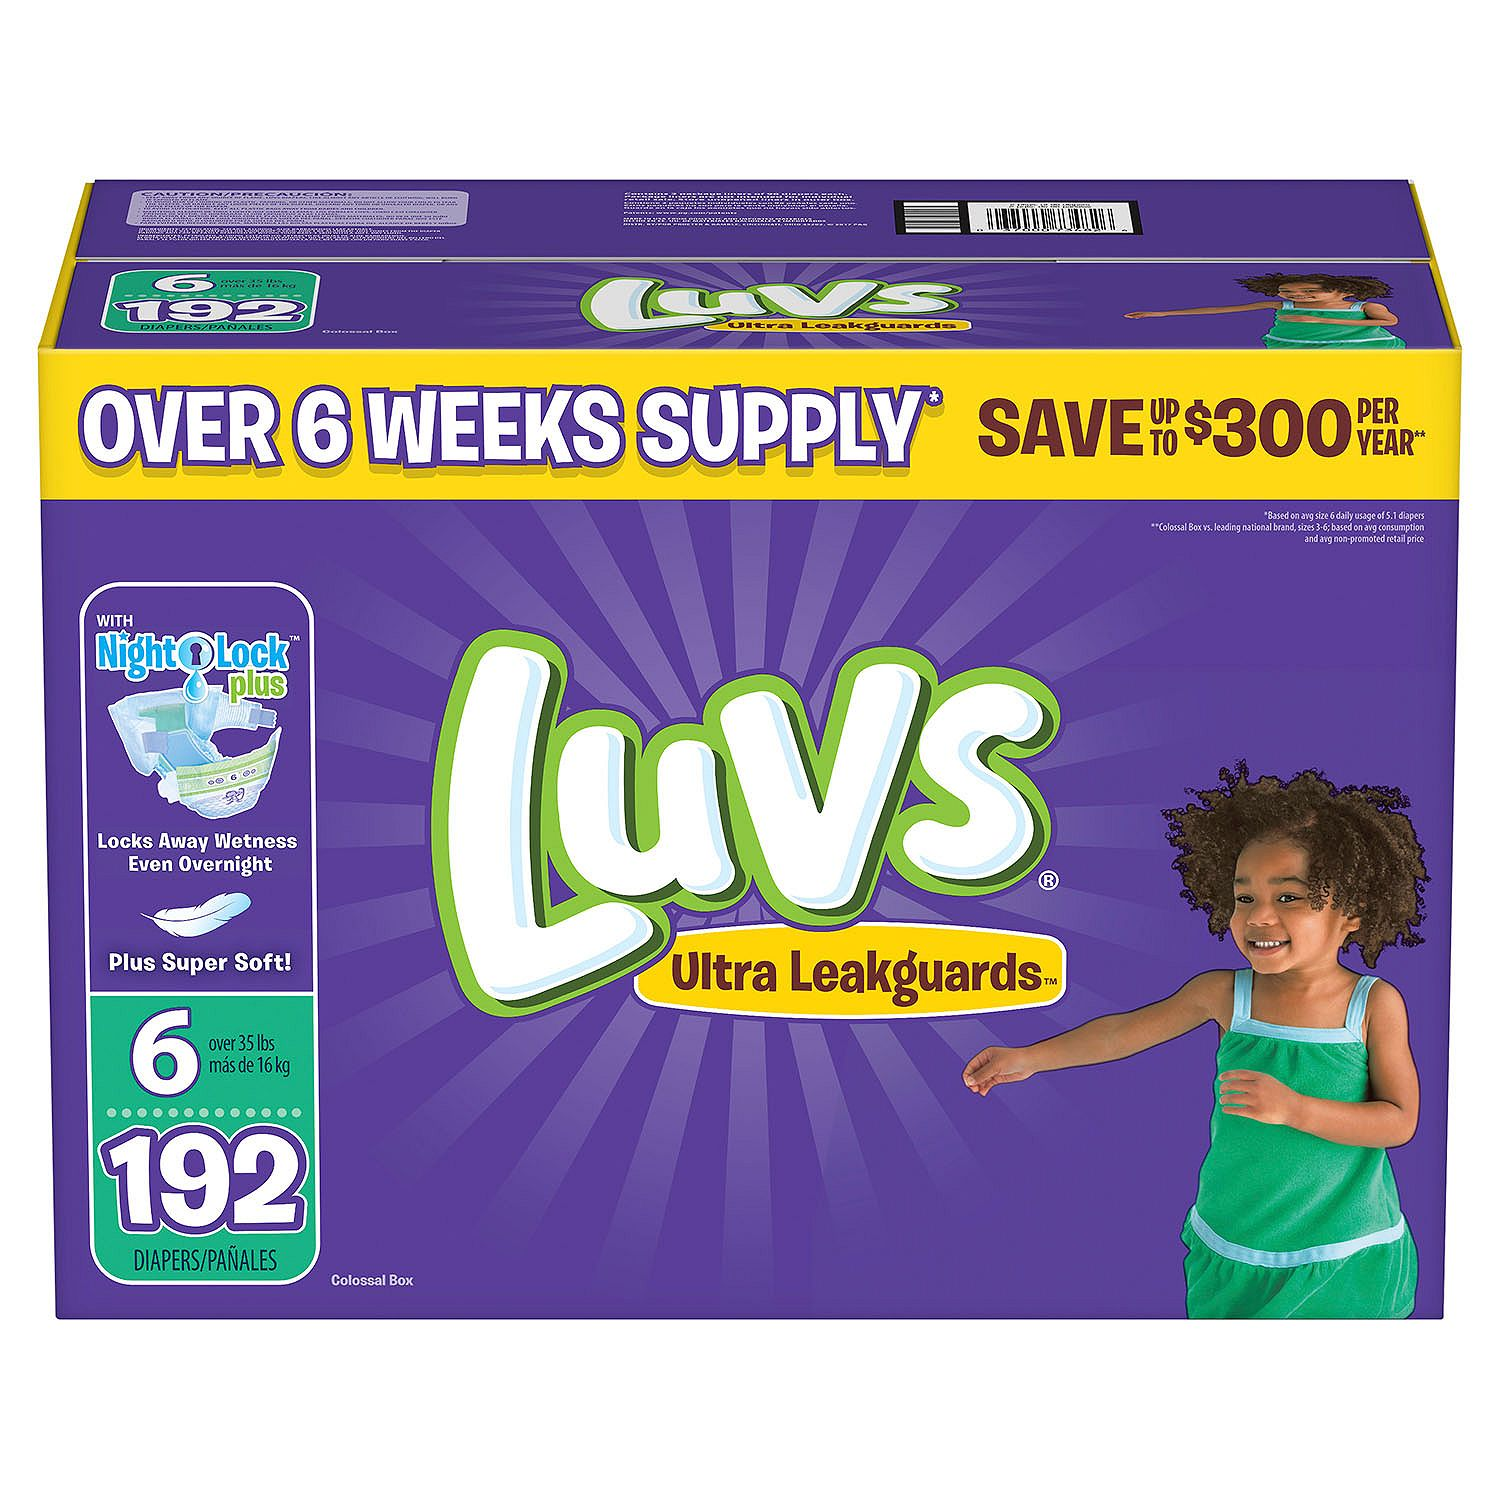 Luvs Ultra Leakguards Diapers Size Size 6 192 ct. Bulk Qty, Free Shipping Comfortable, Soft, No leaking & Good... by Branded Diapers